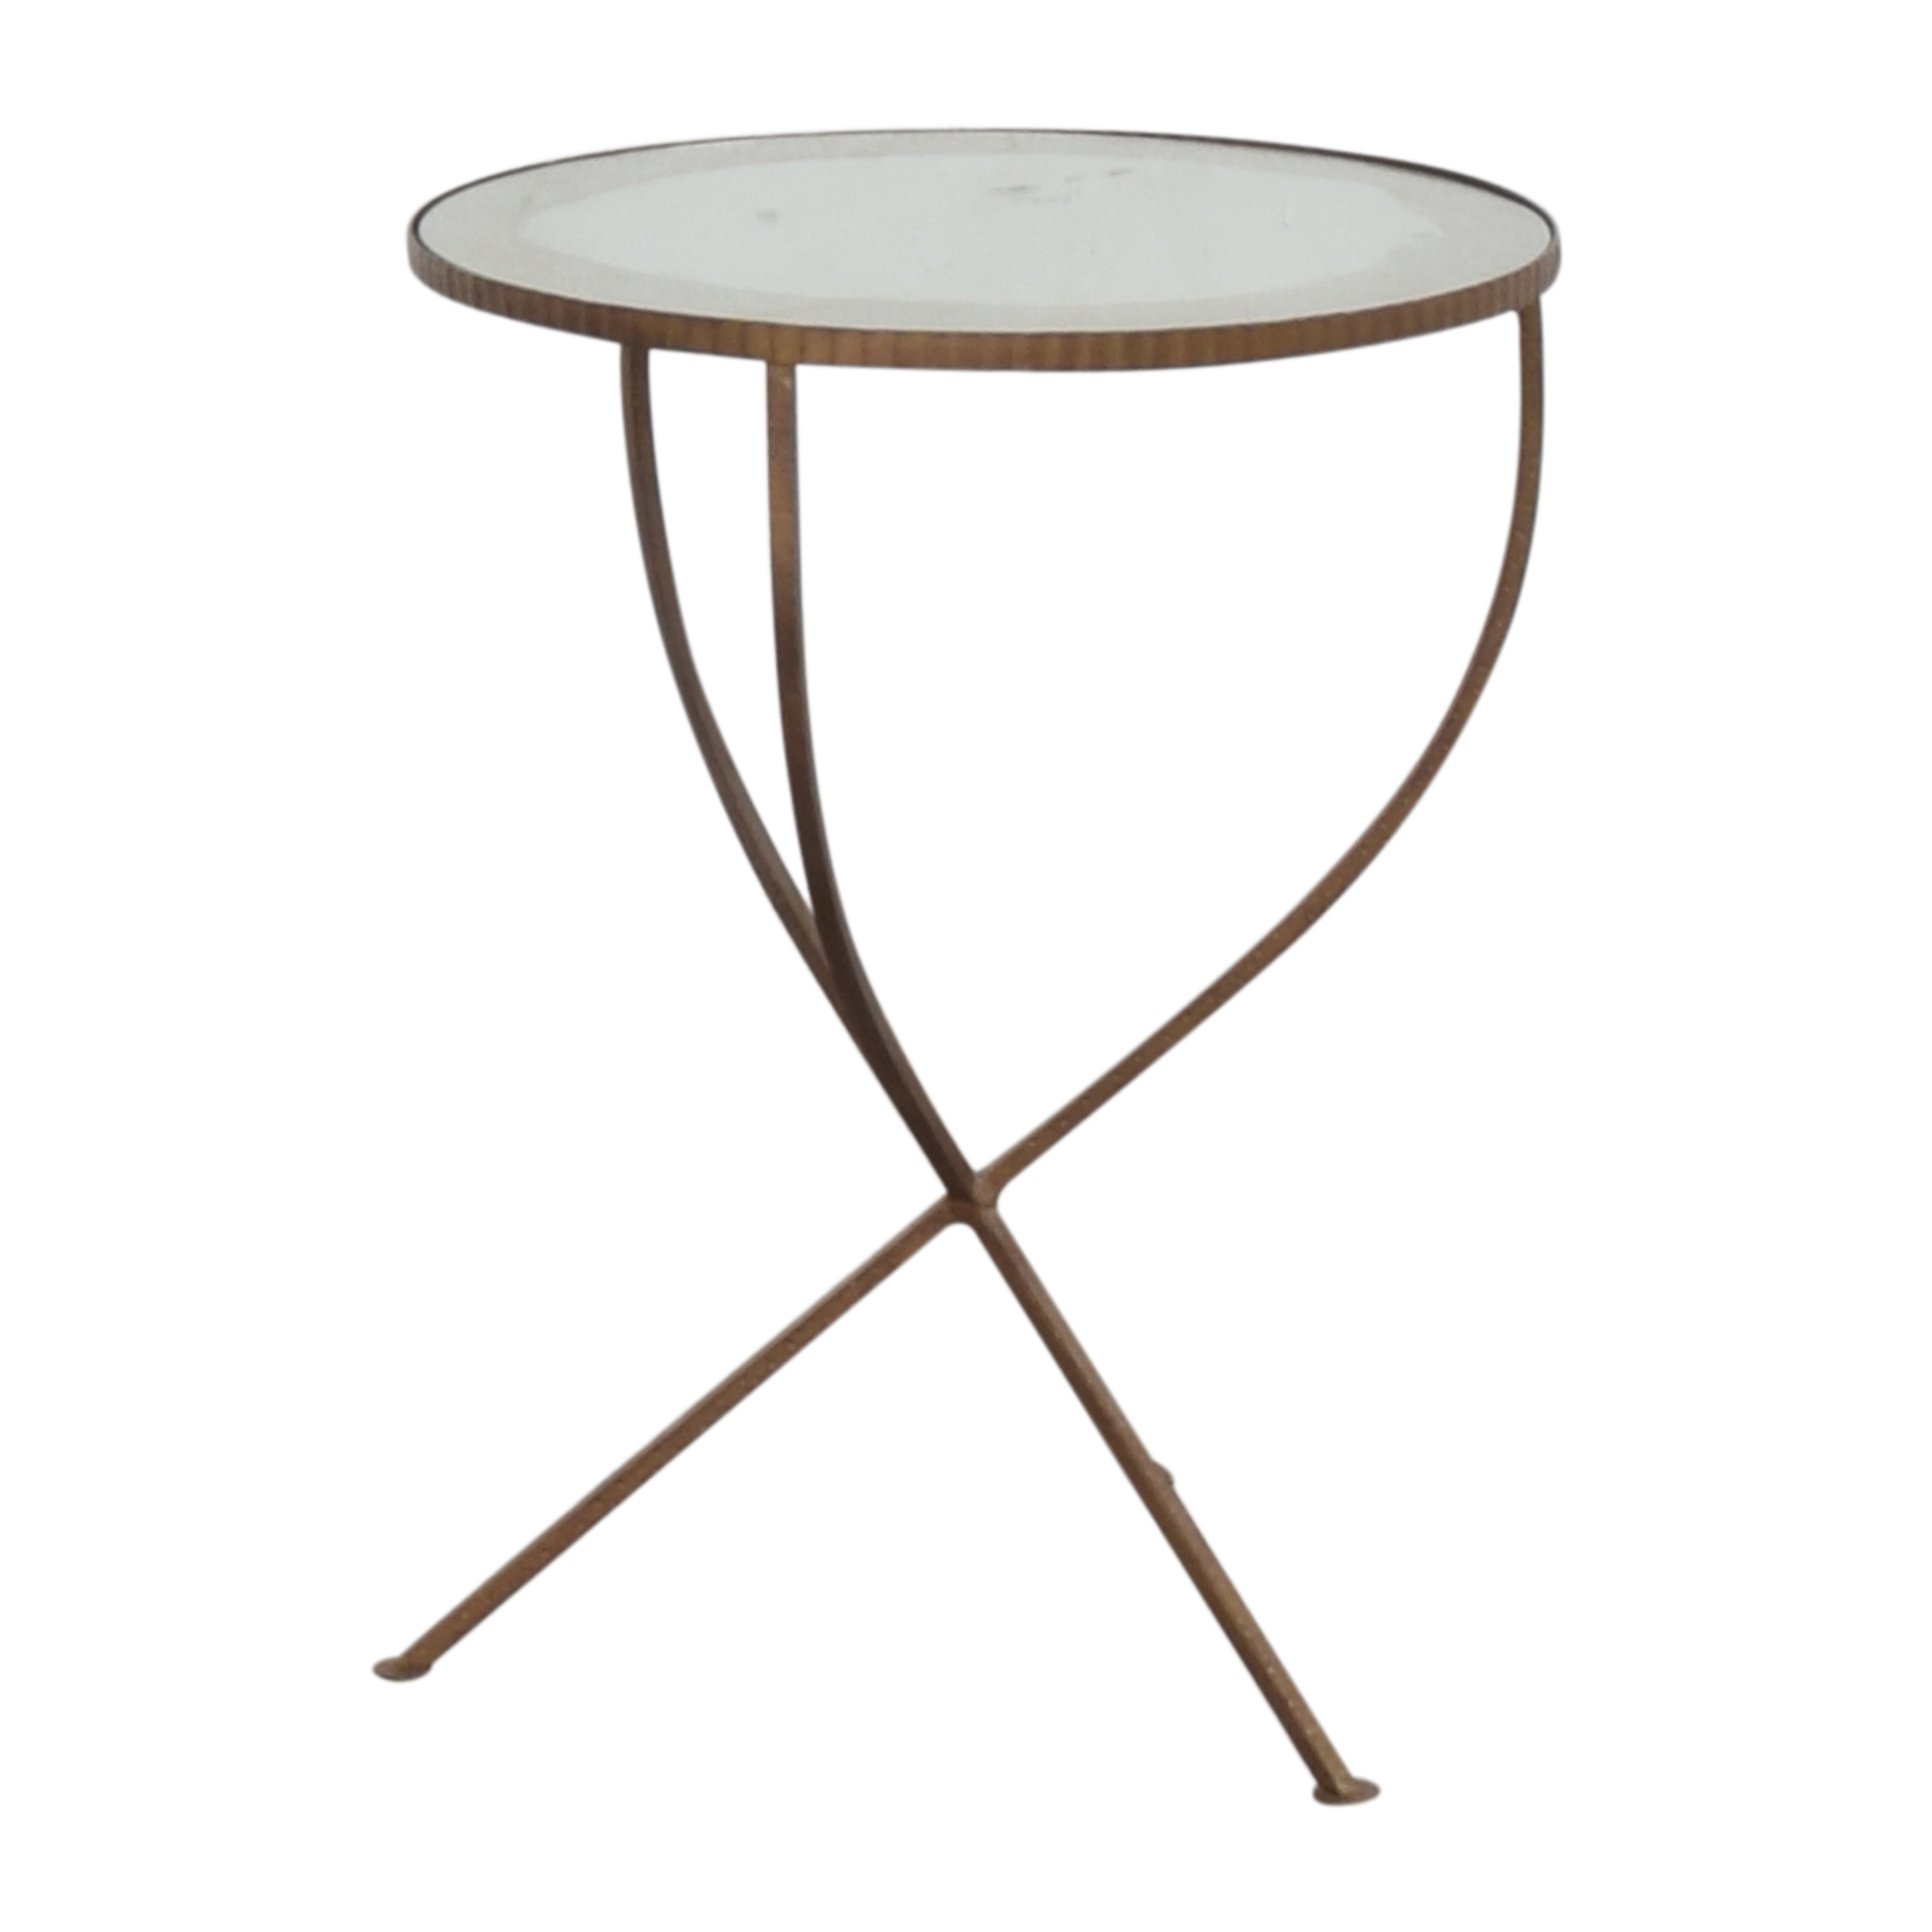 buy Crate & Barrel Crate & Barrel Round Coffee Table online